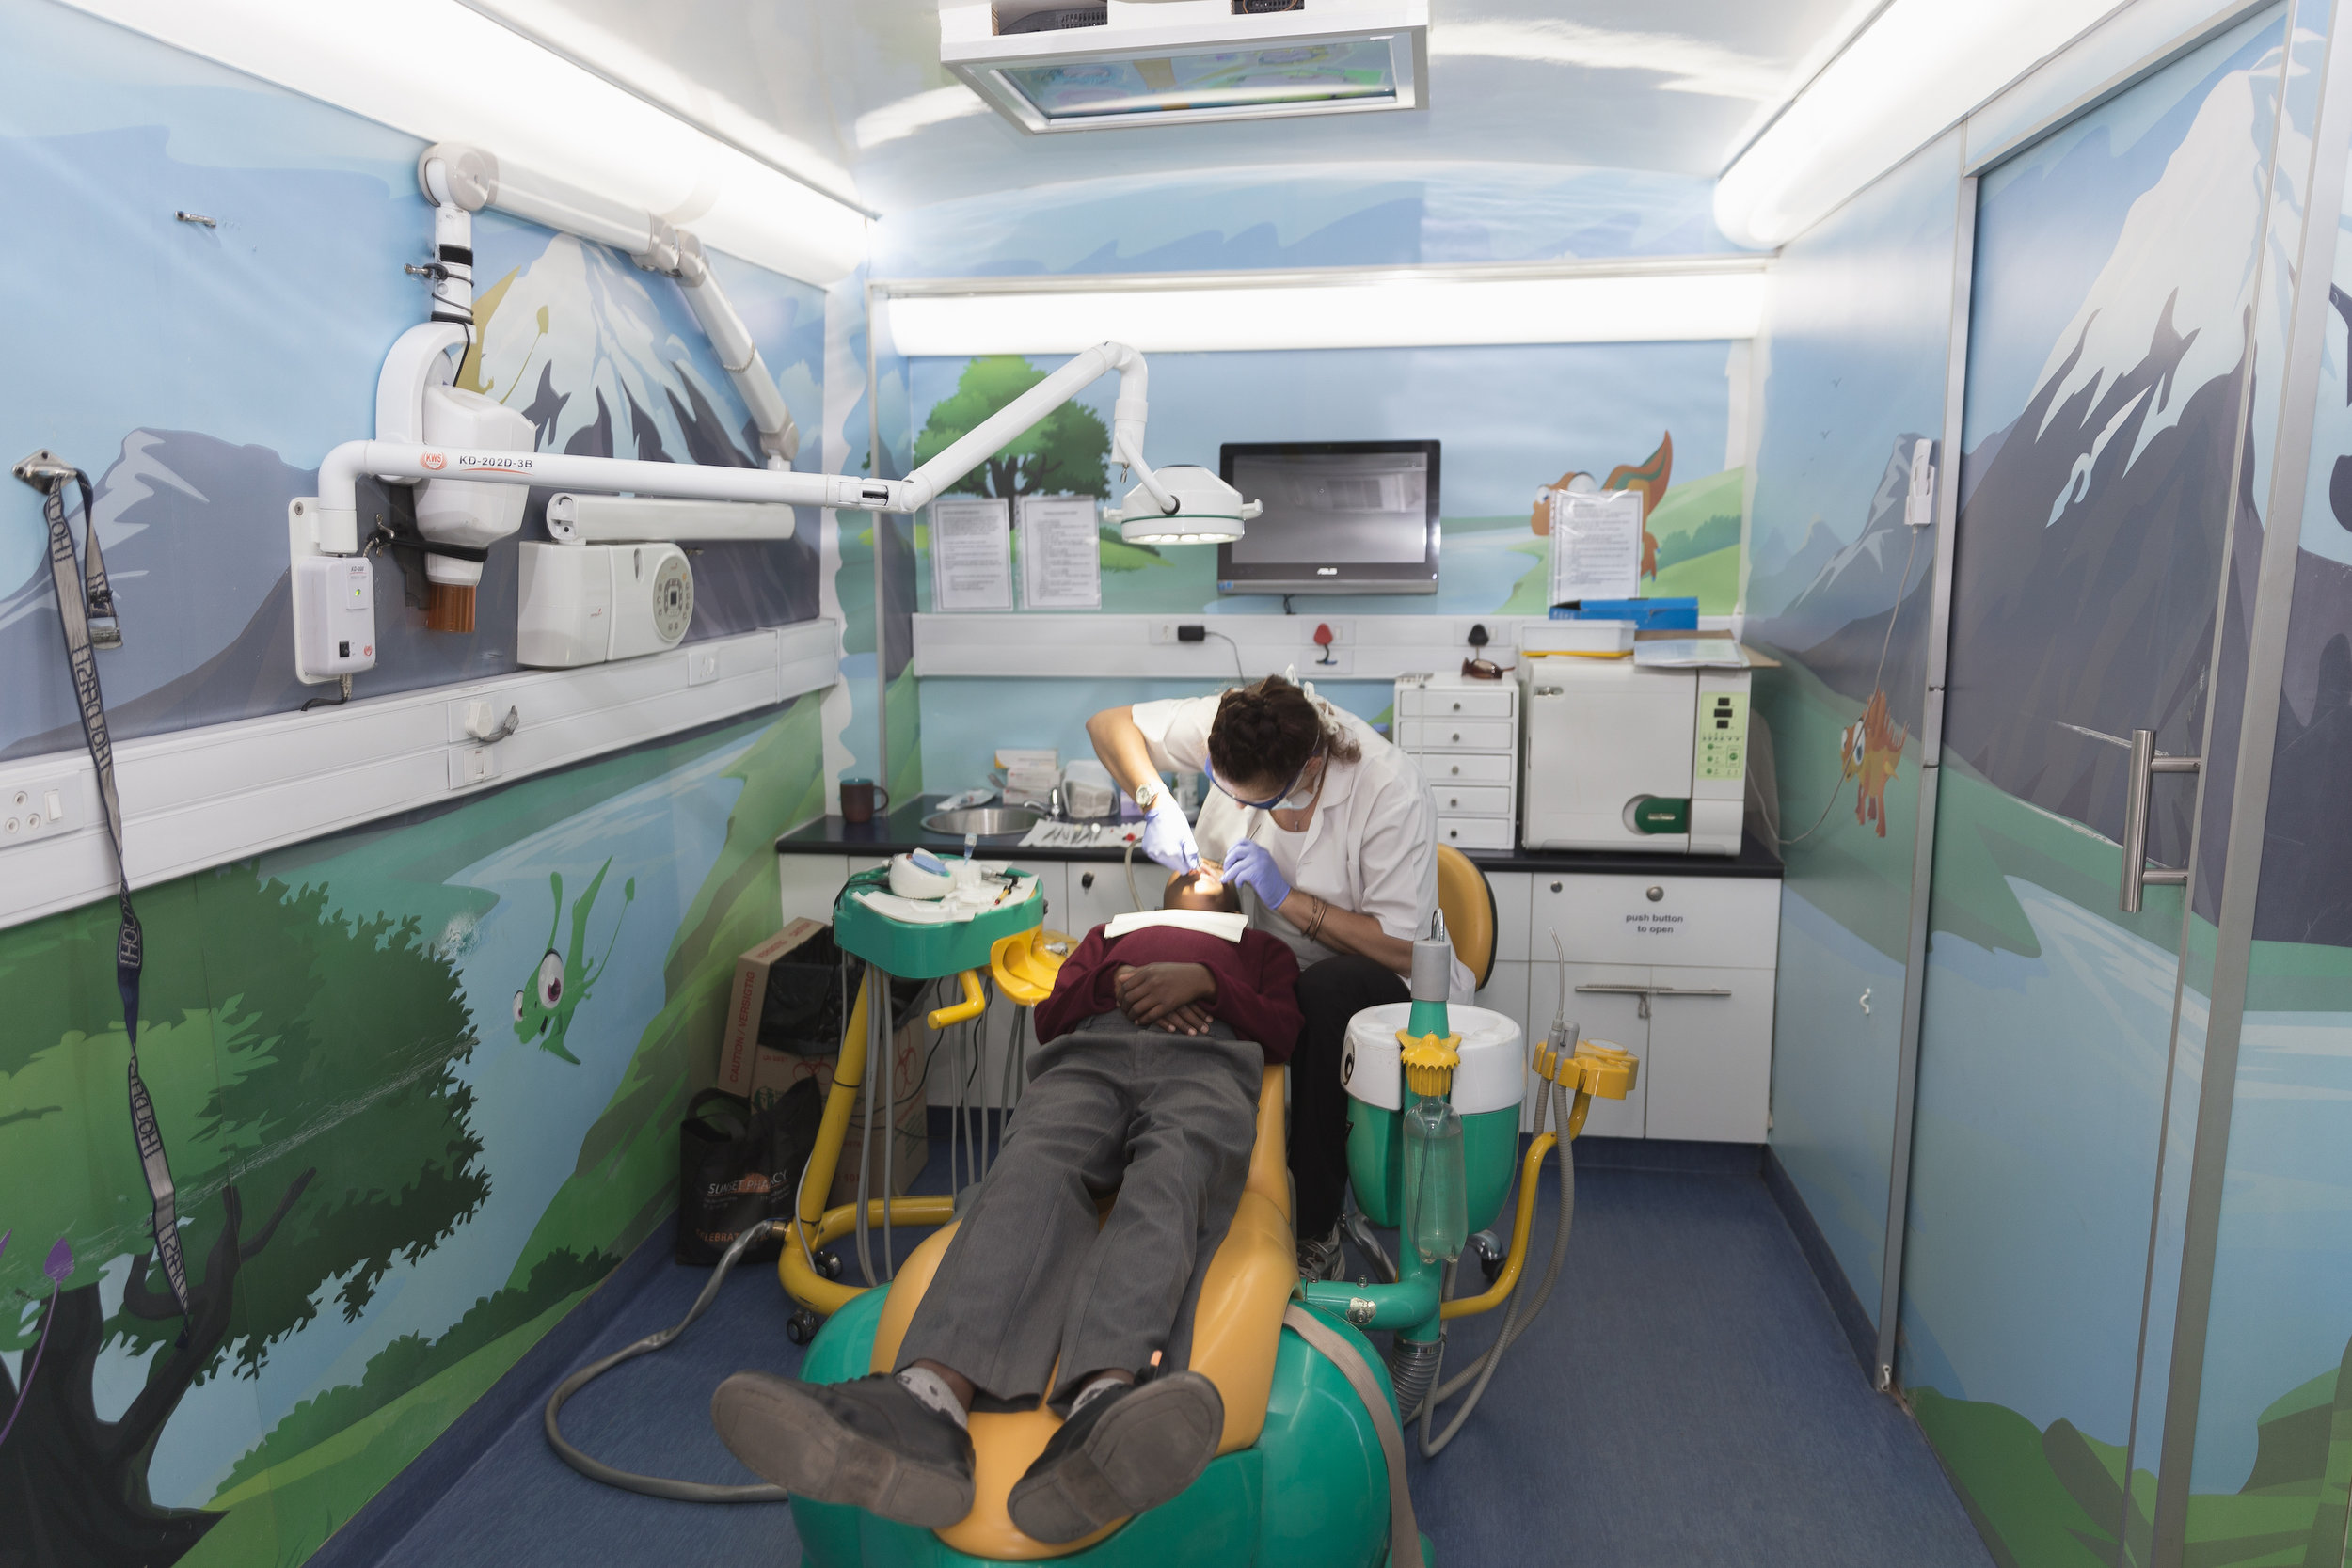 Dentistry section - Preventative oral hygiene is admistered by Mobile Schools Health dentists / oral hygienists.